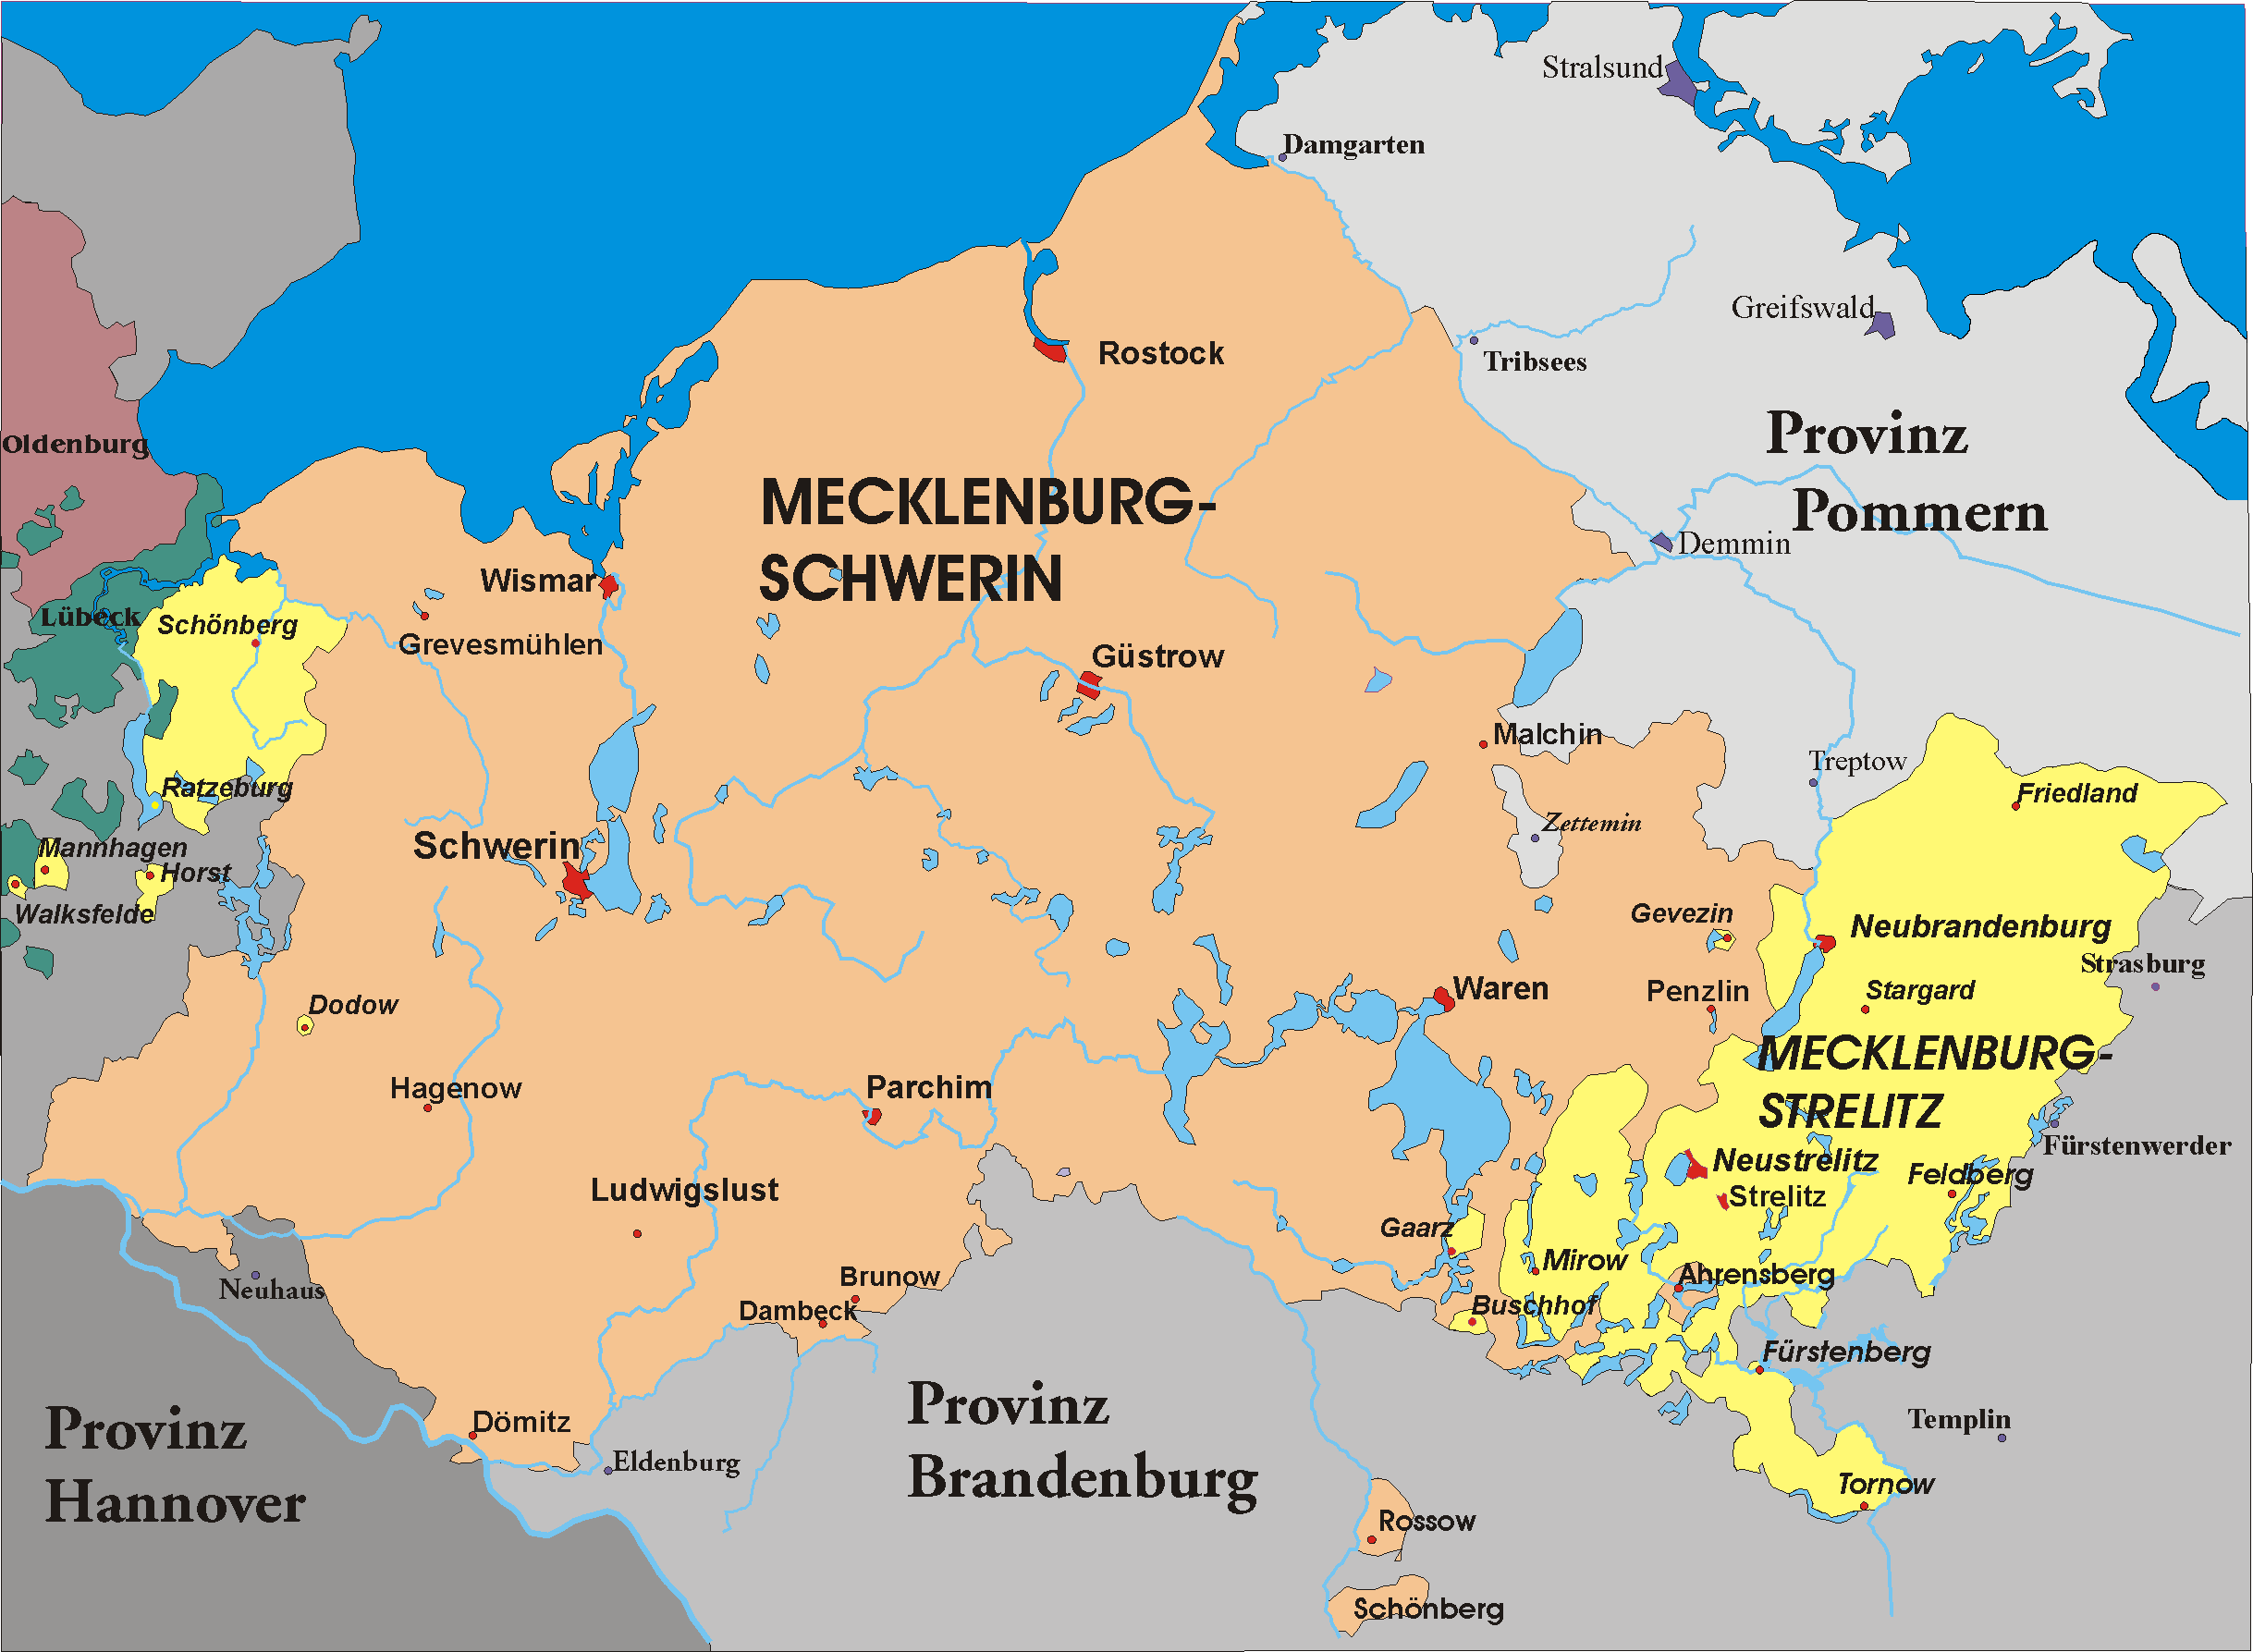 the basic history economy and culture of the german state of mecklenburf vorpommern